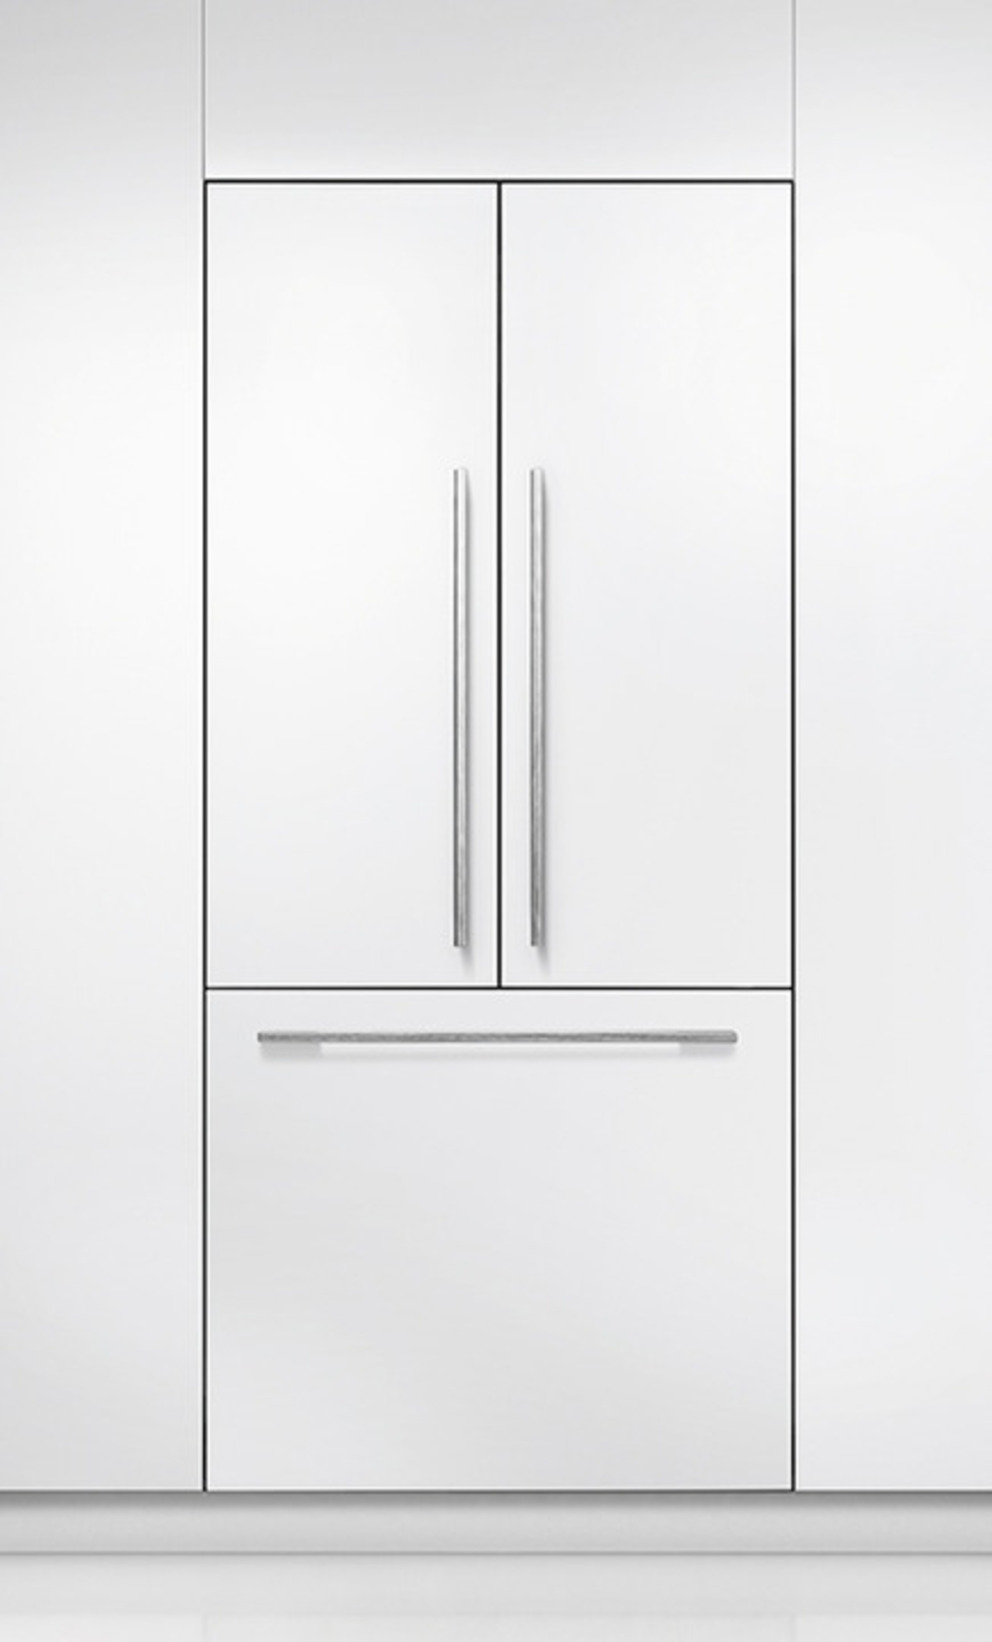 Réfrigérateurs Fisher&Paykel RS36A80J1 (80'' F&P)